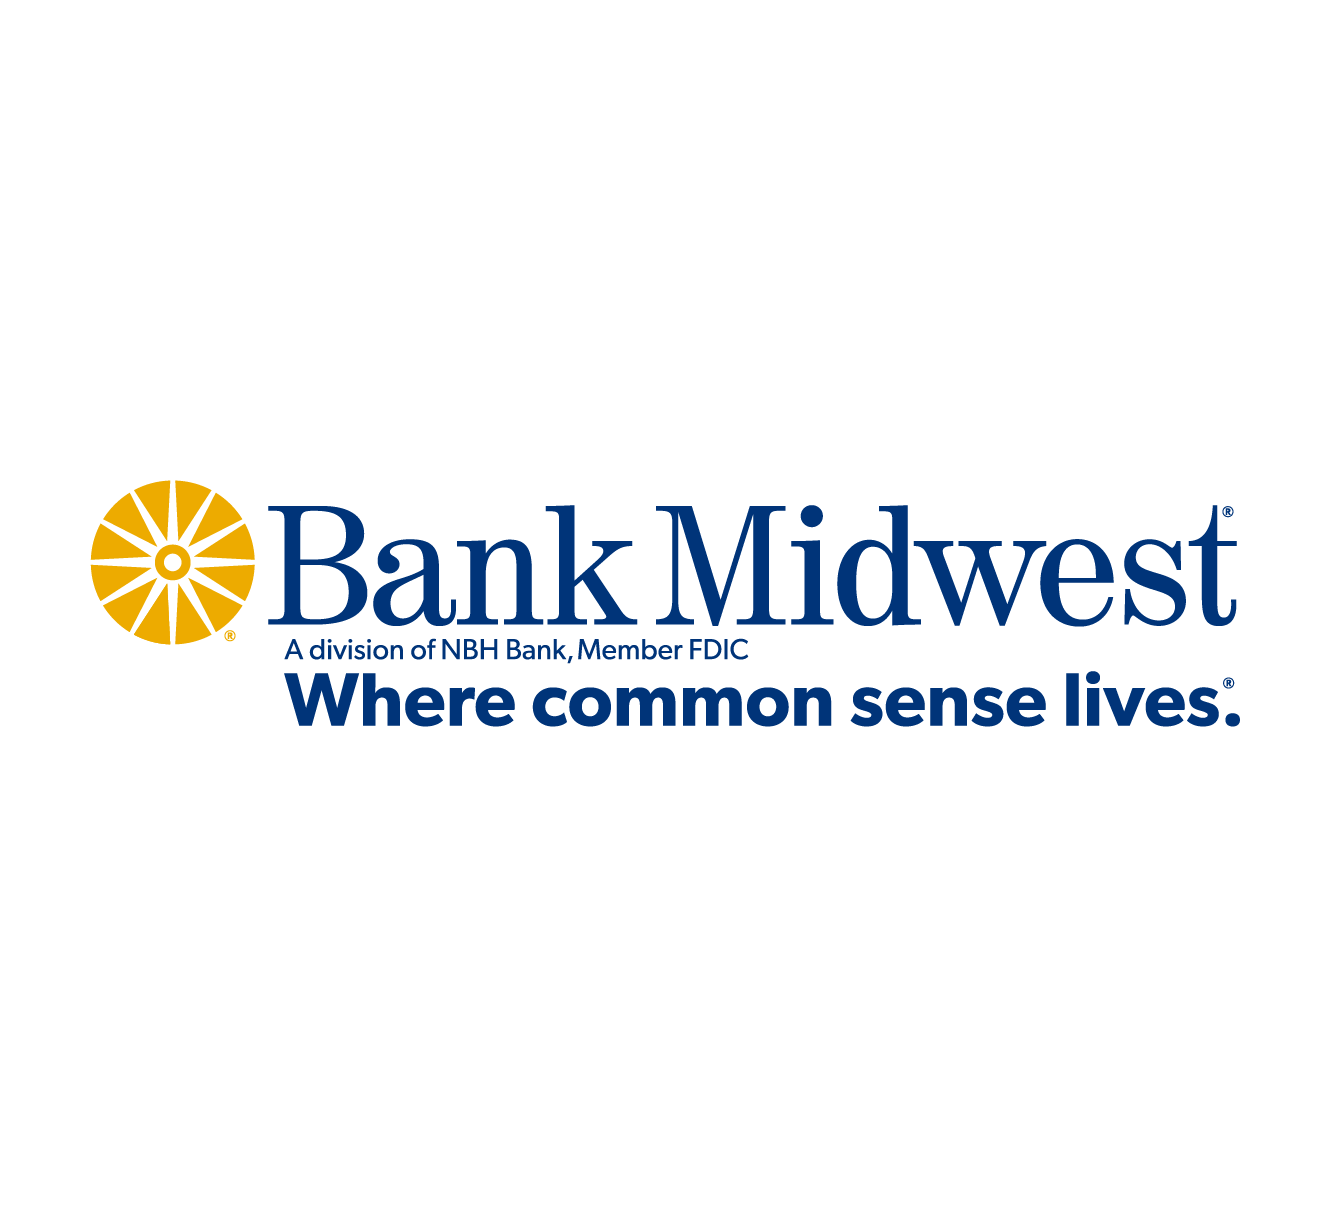 Bank_Midwest-01